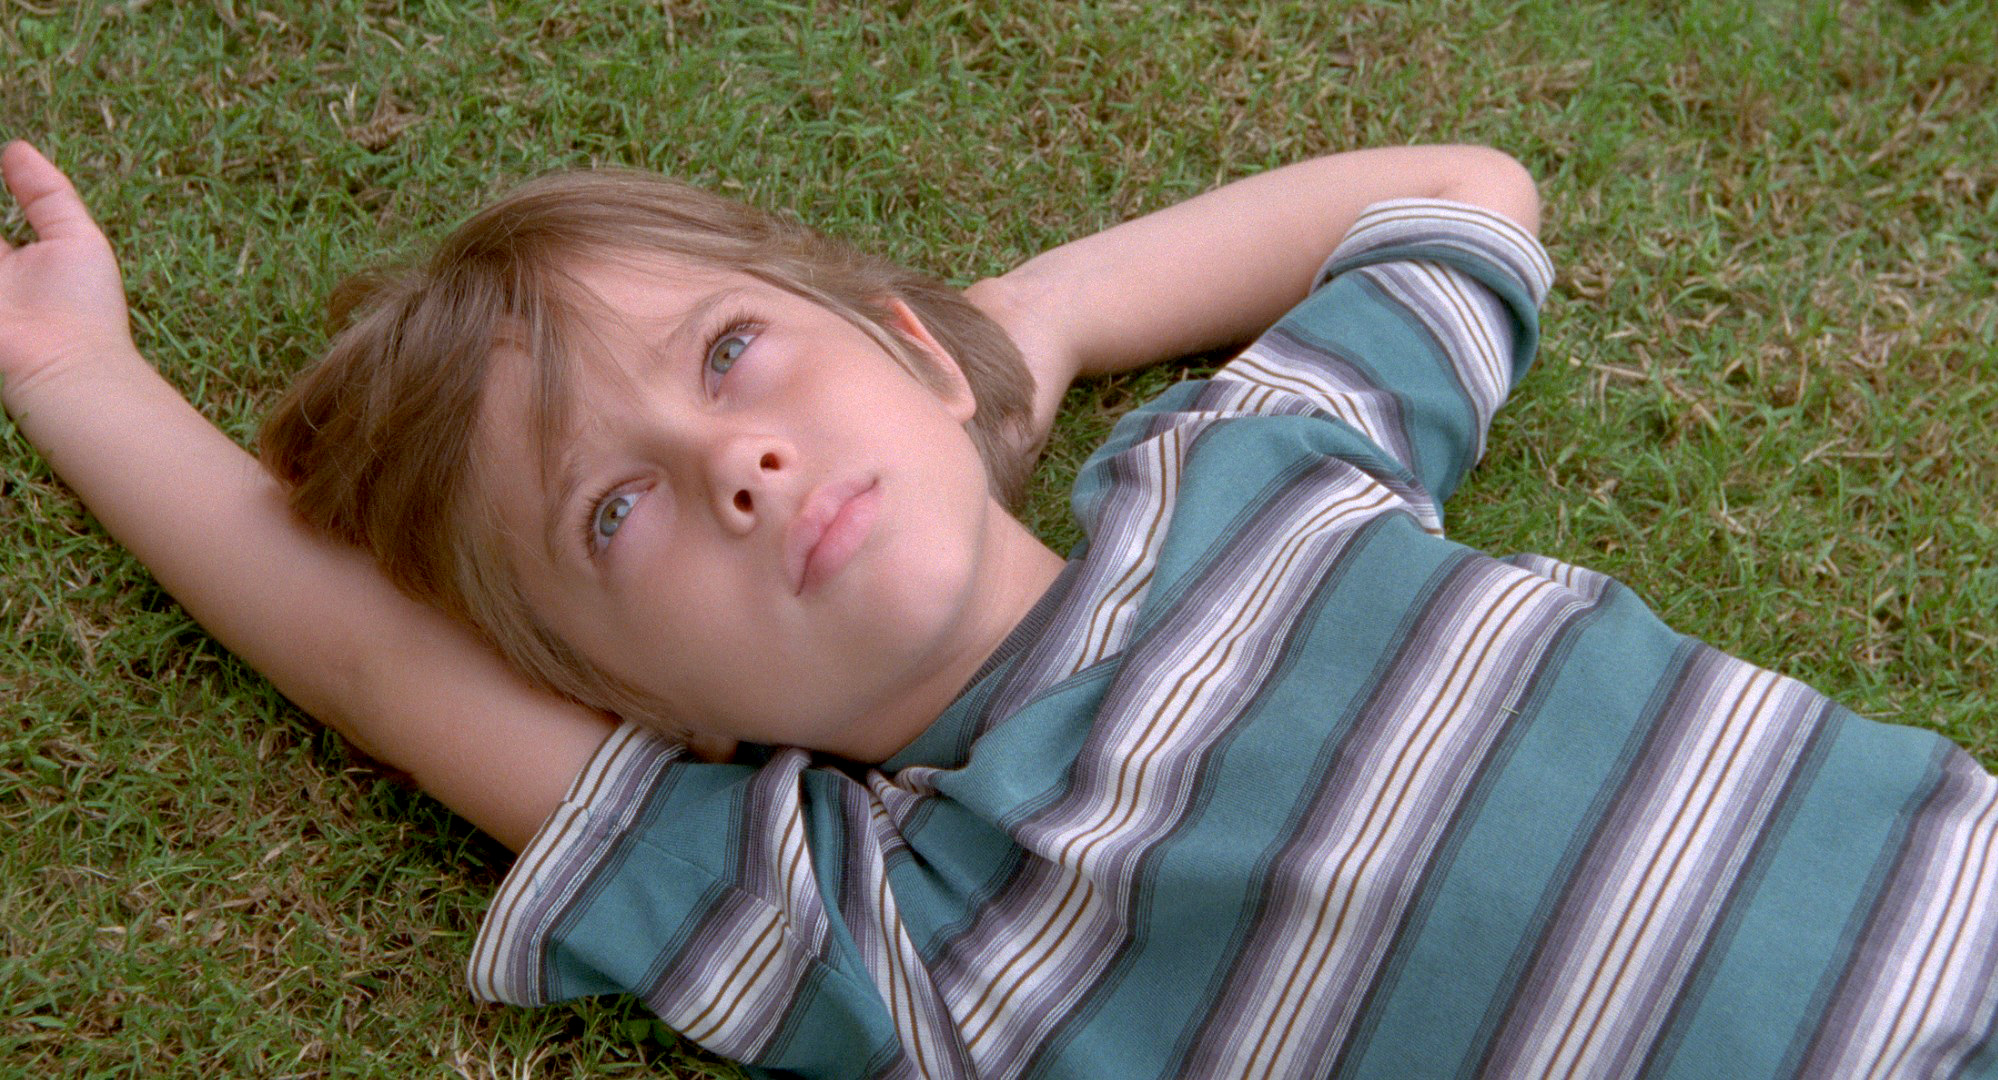 Six-year-old Mason, played by Ellar Coltrane, in Richard Linklater's